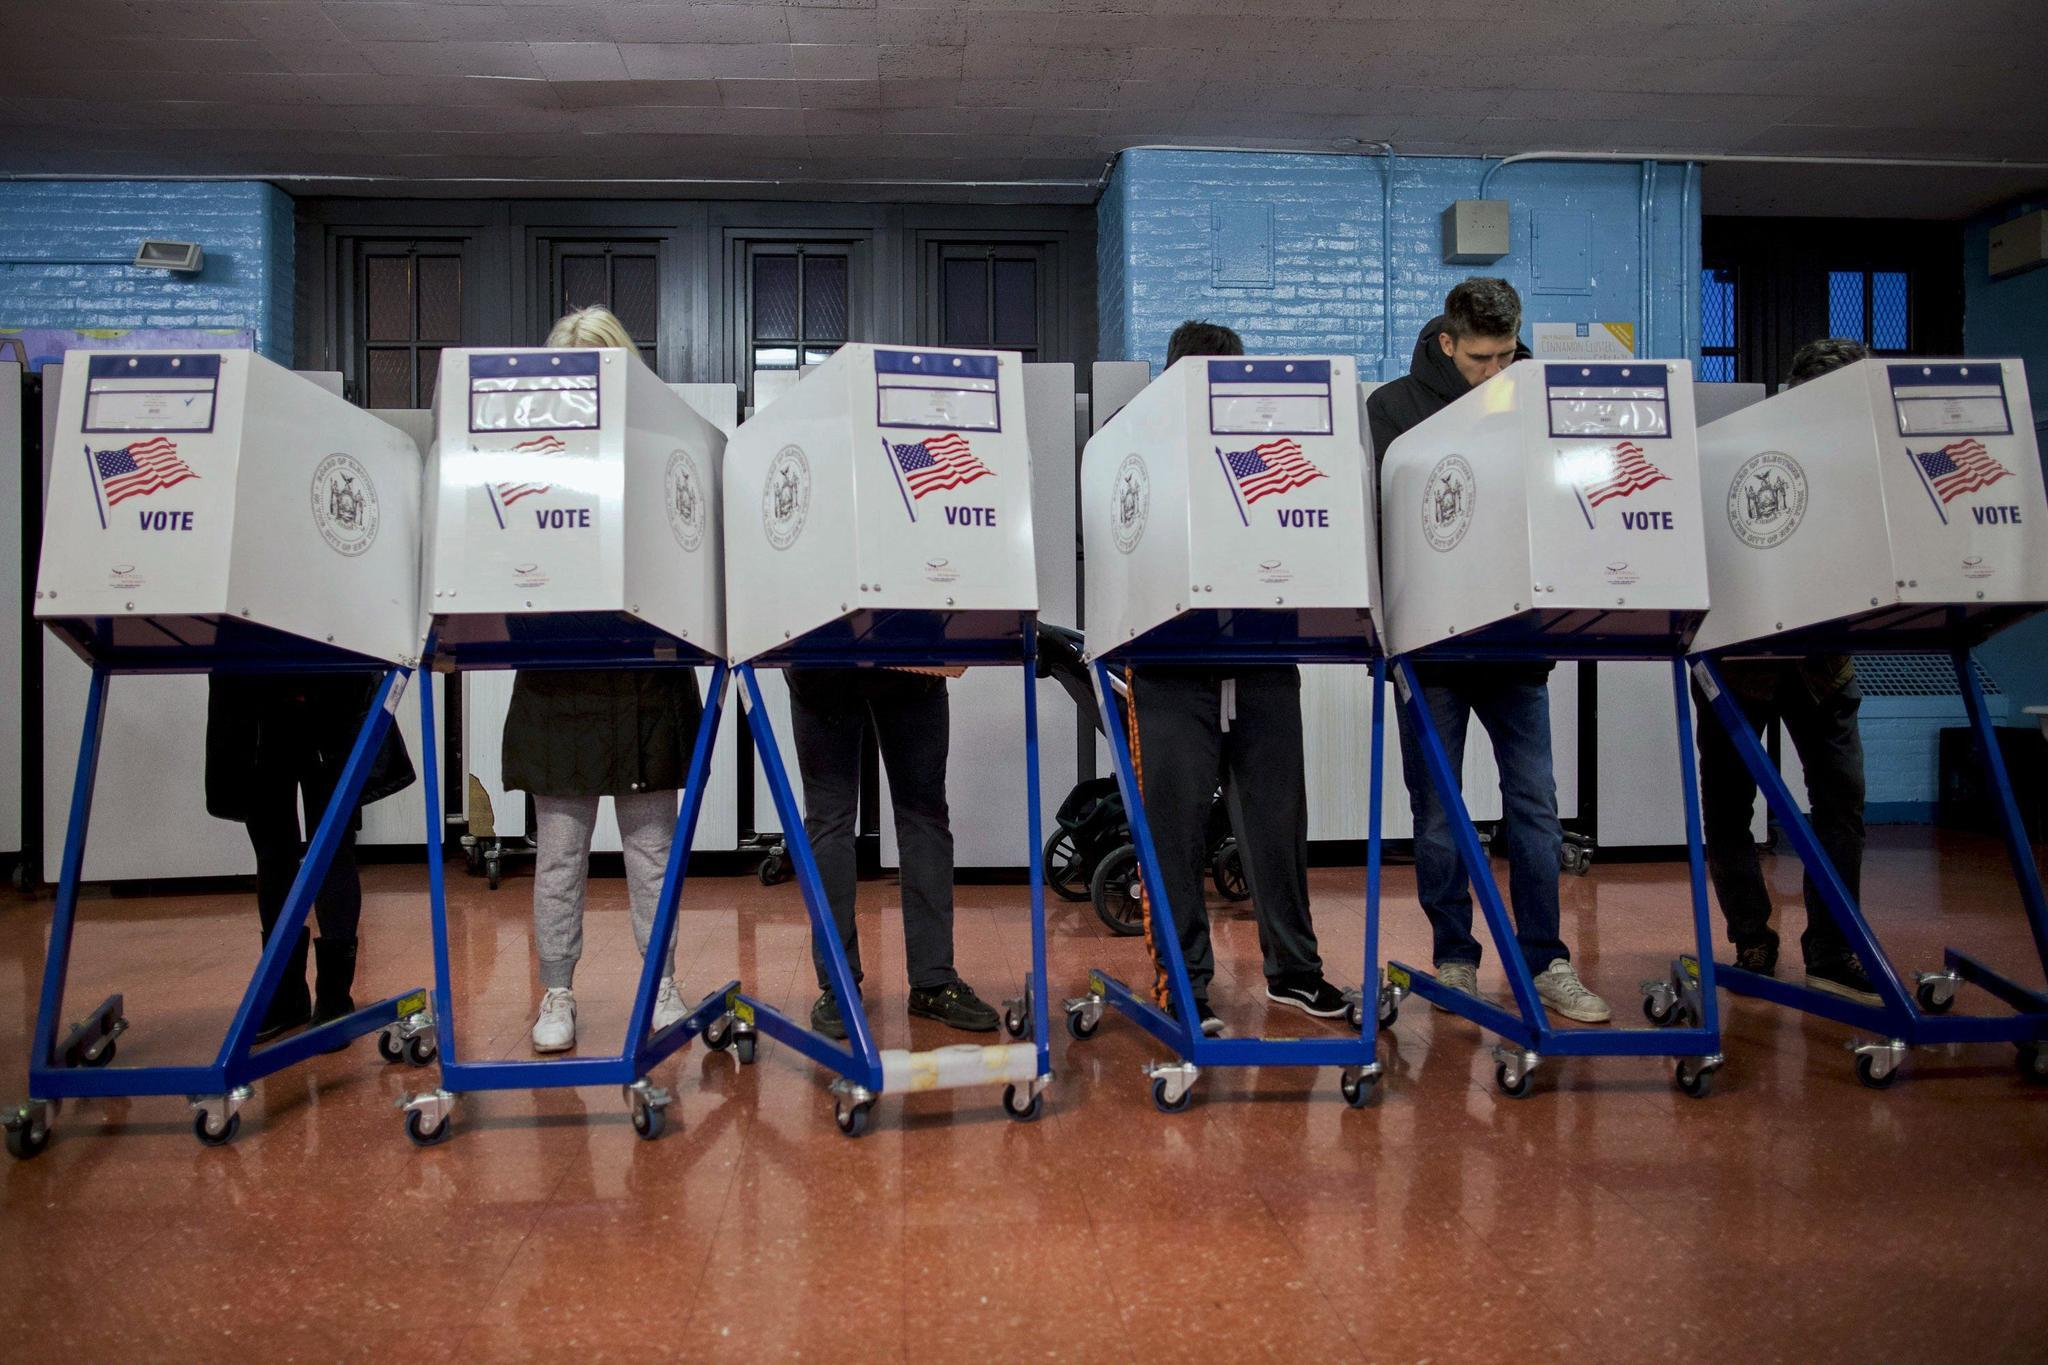 Crowded Republican field emerges in 9th Congressional District primary involving Arlington Heights